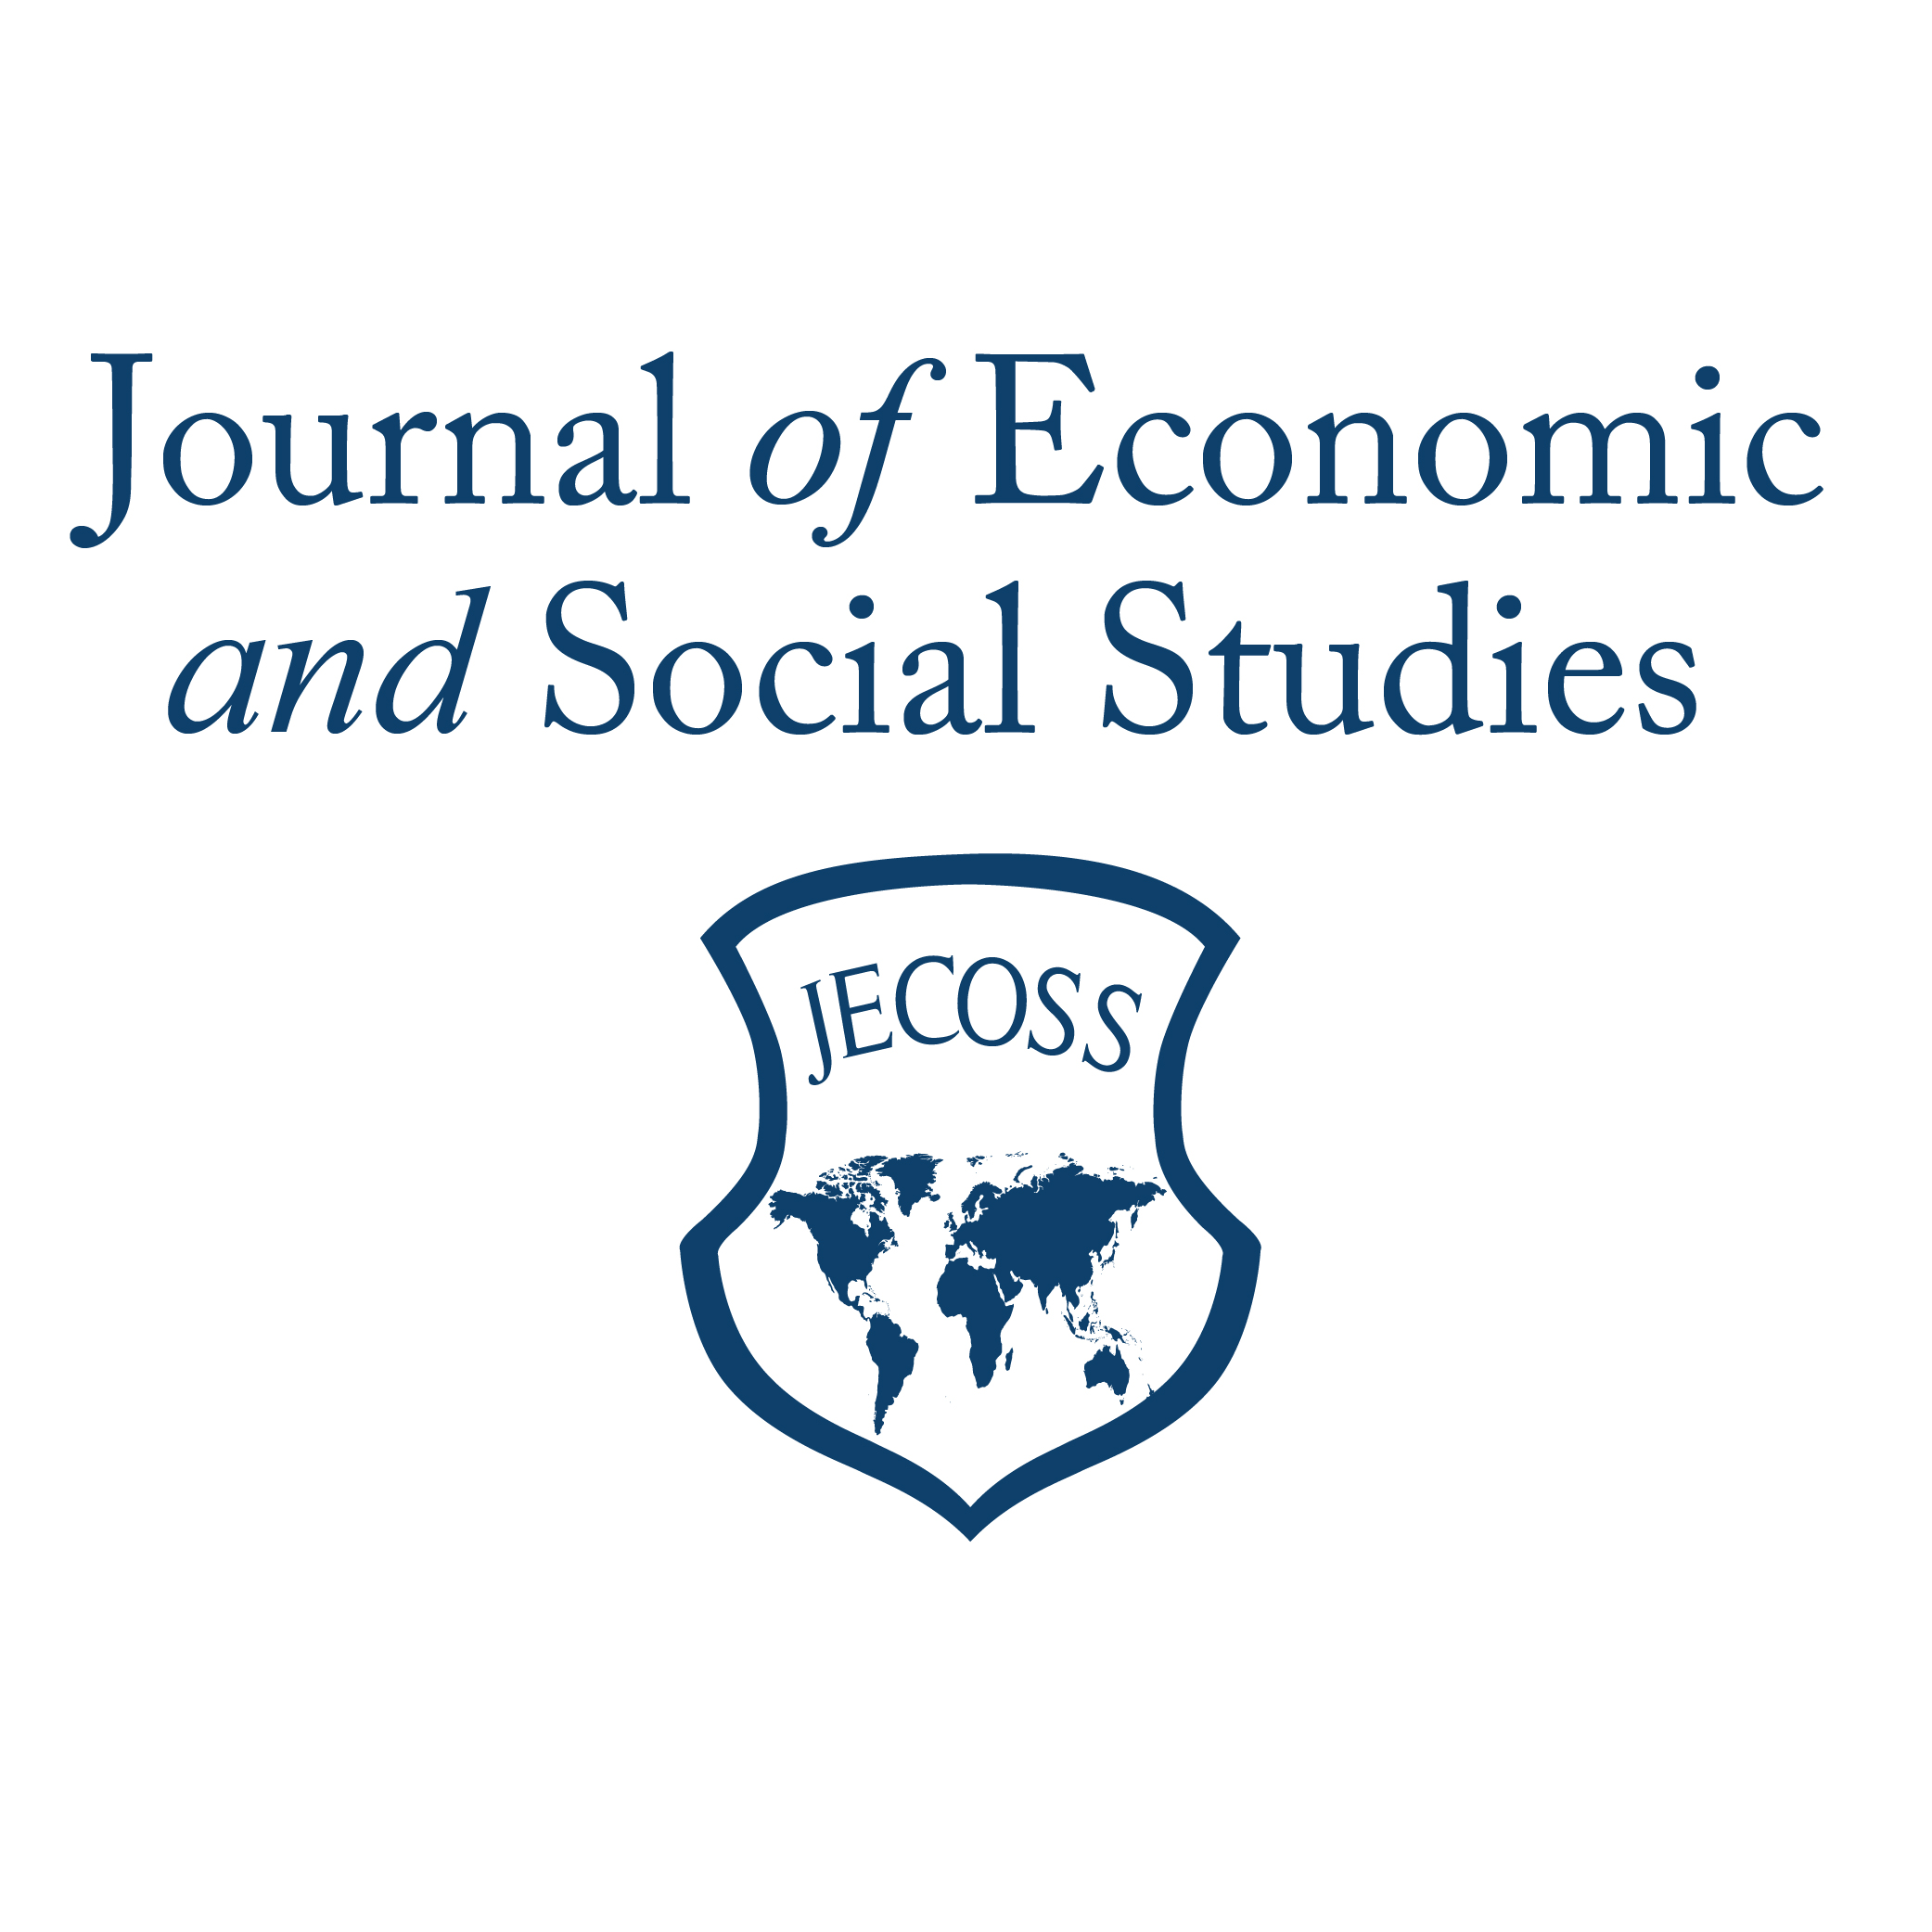 Journal of Economic and Social Studies